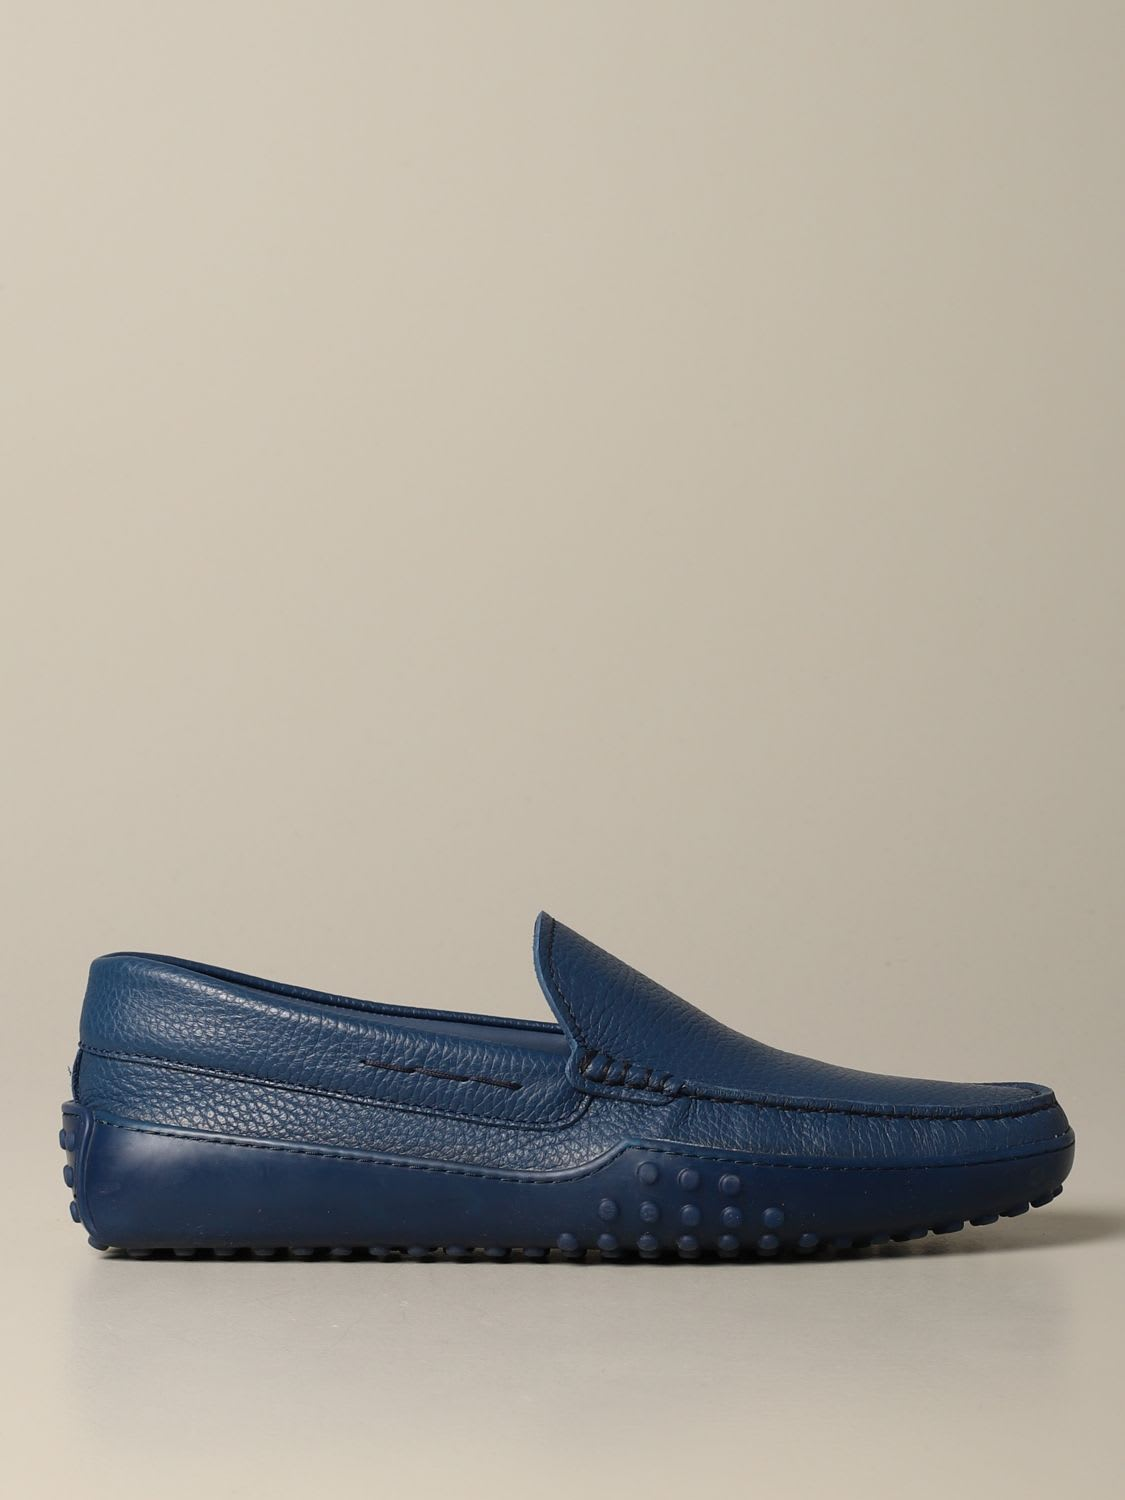 Tods Loafers Tods Gommini Moccasin In Textured Leather